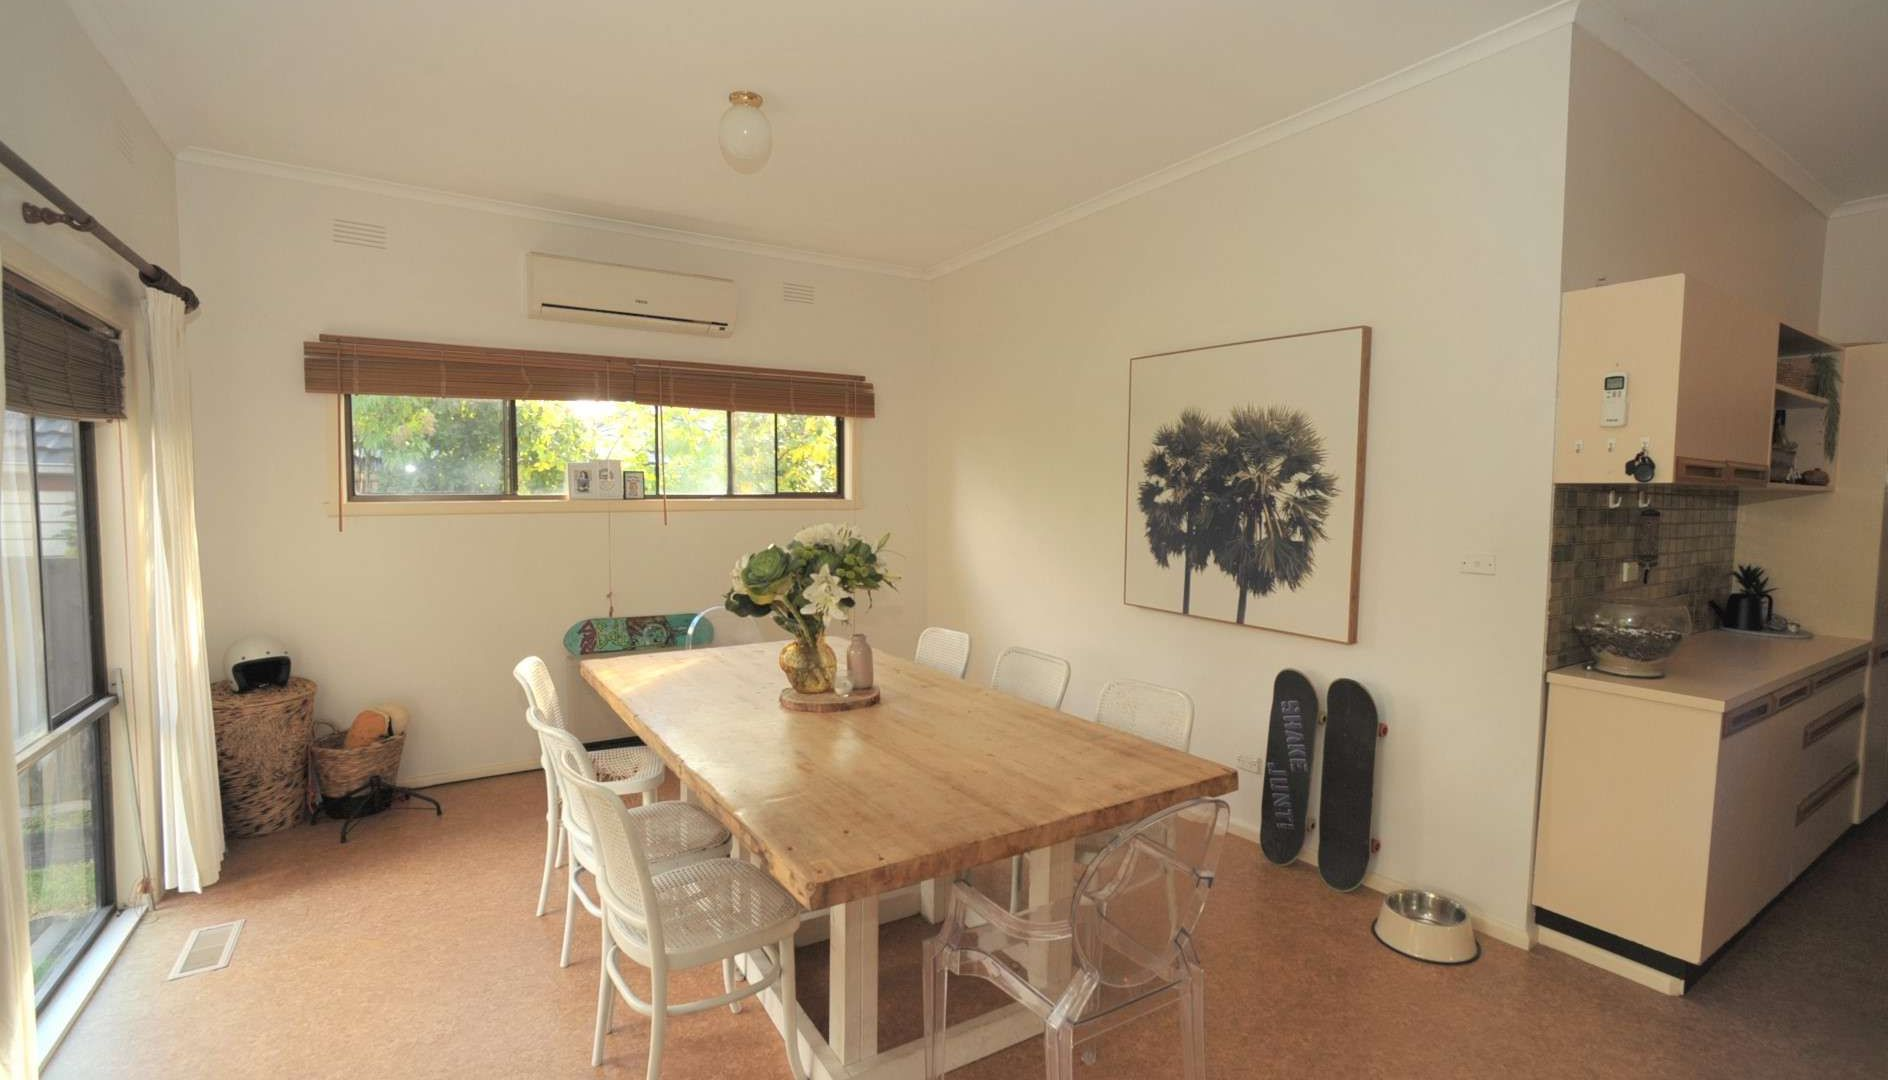 46 Fairview Avenue, Camberwell VIC 3124, Image 2